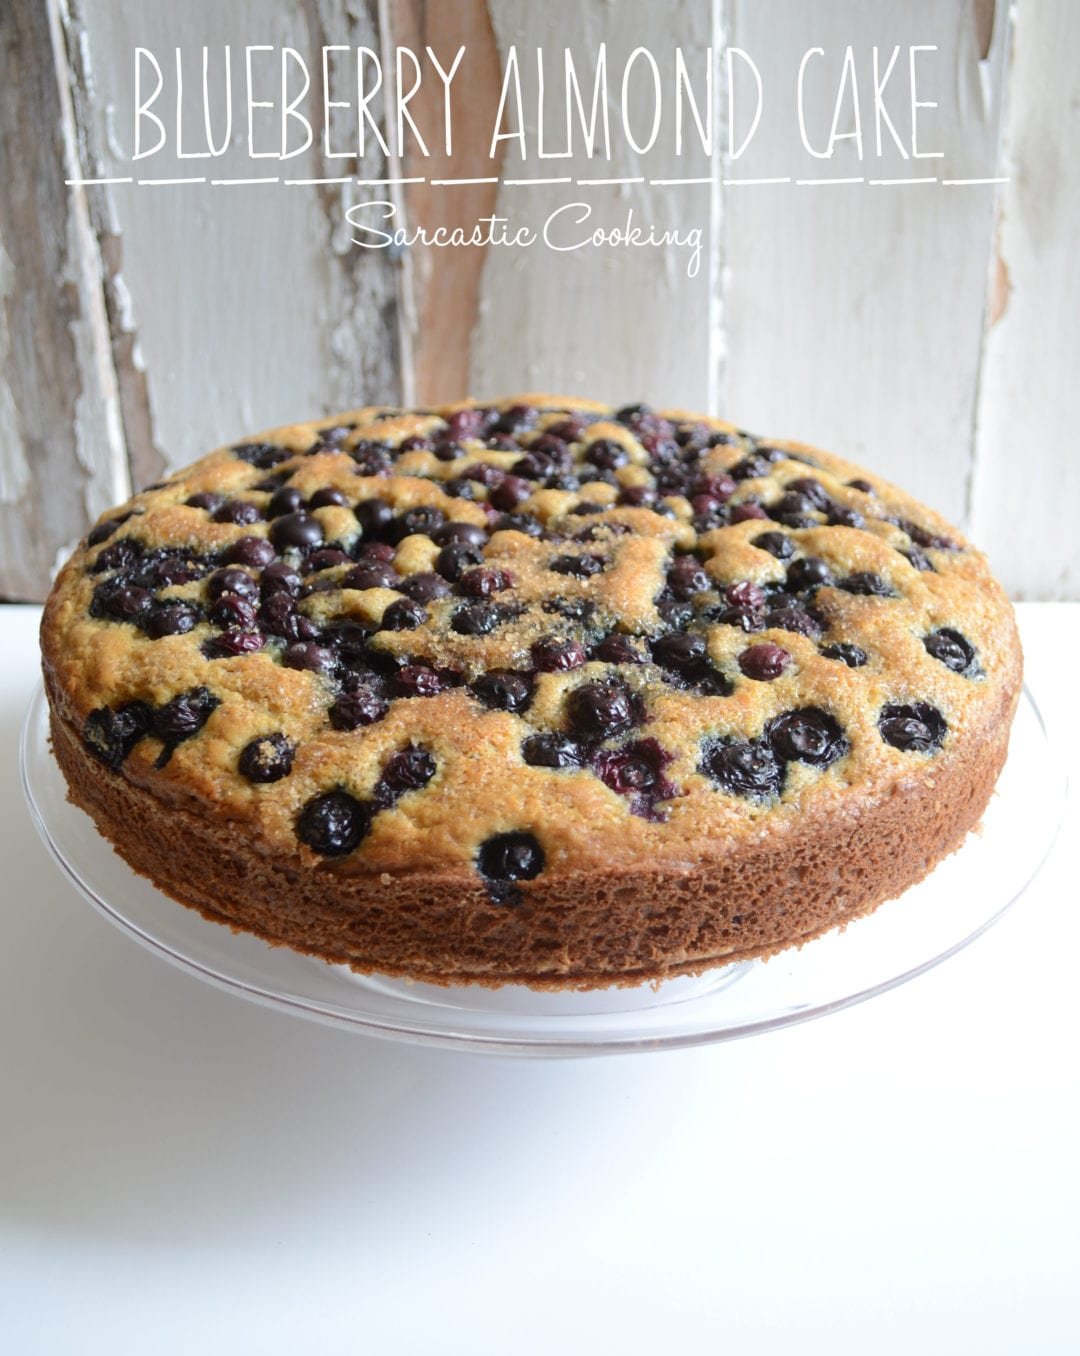 Blueberry Almond Cake Sarcastic Cooking